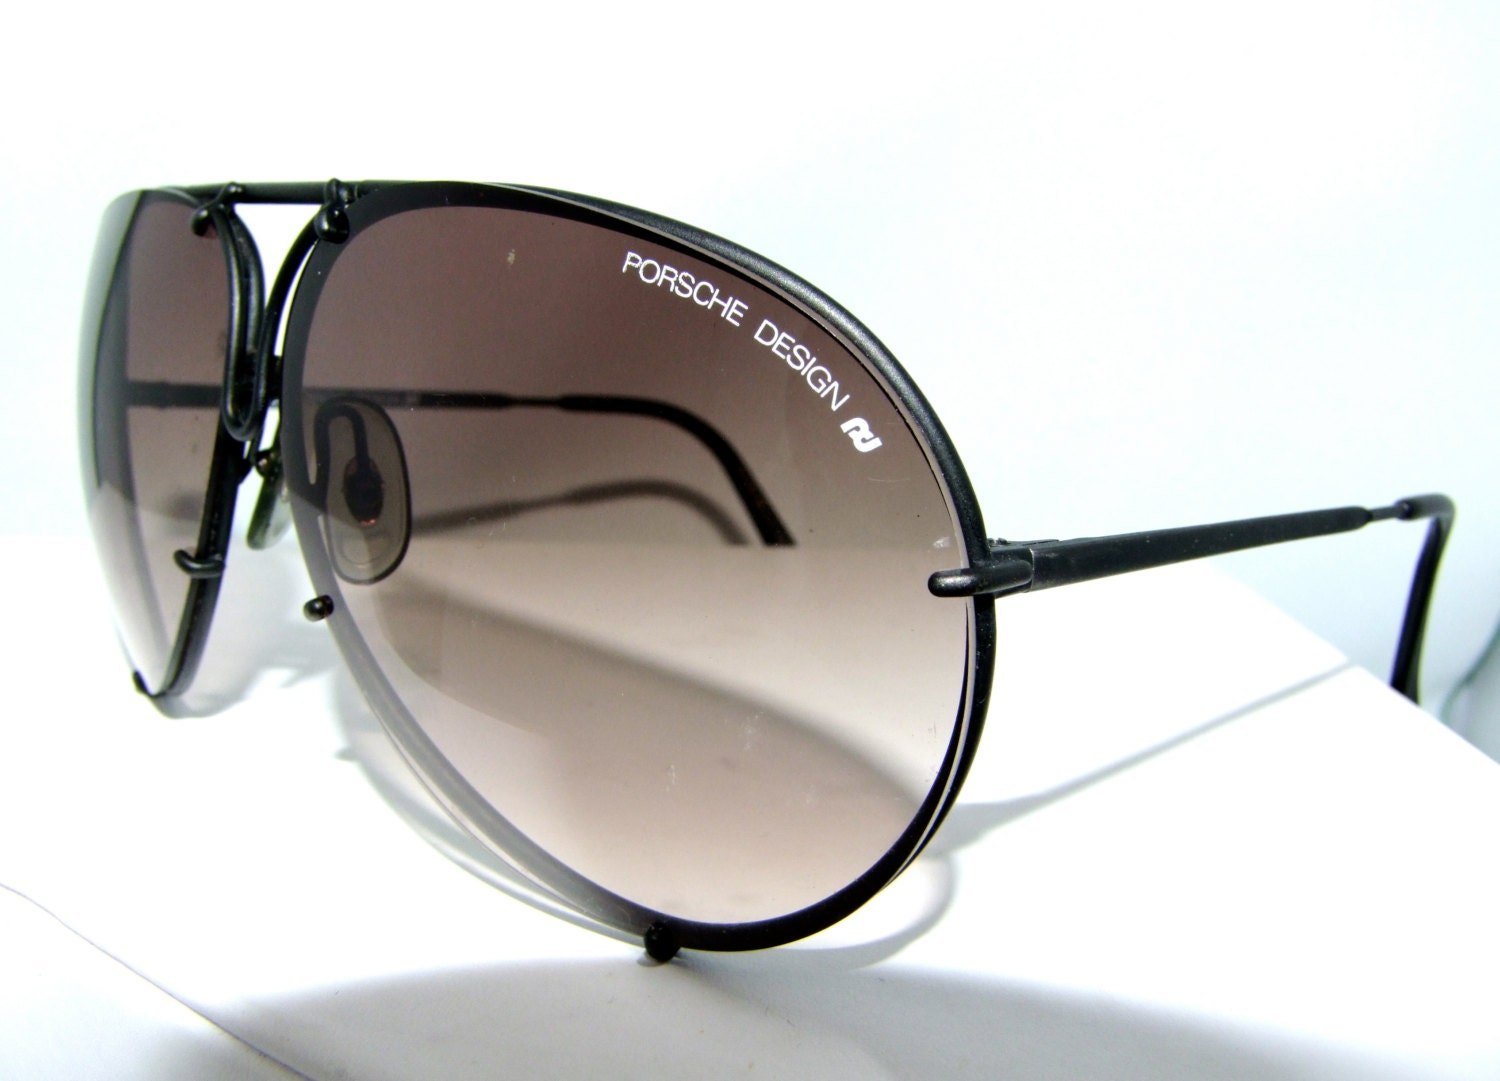 Porsche Design Carrera 5621 Aviator Sunglasses Vintage